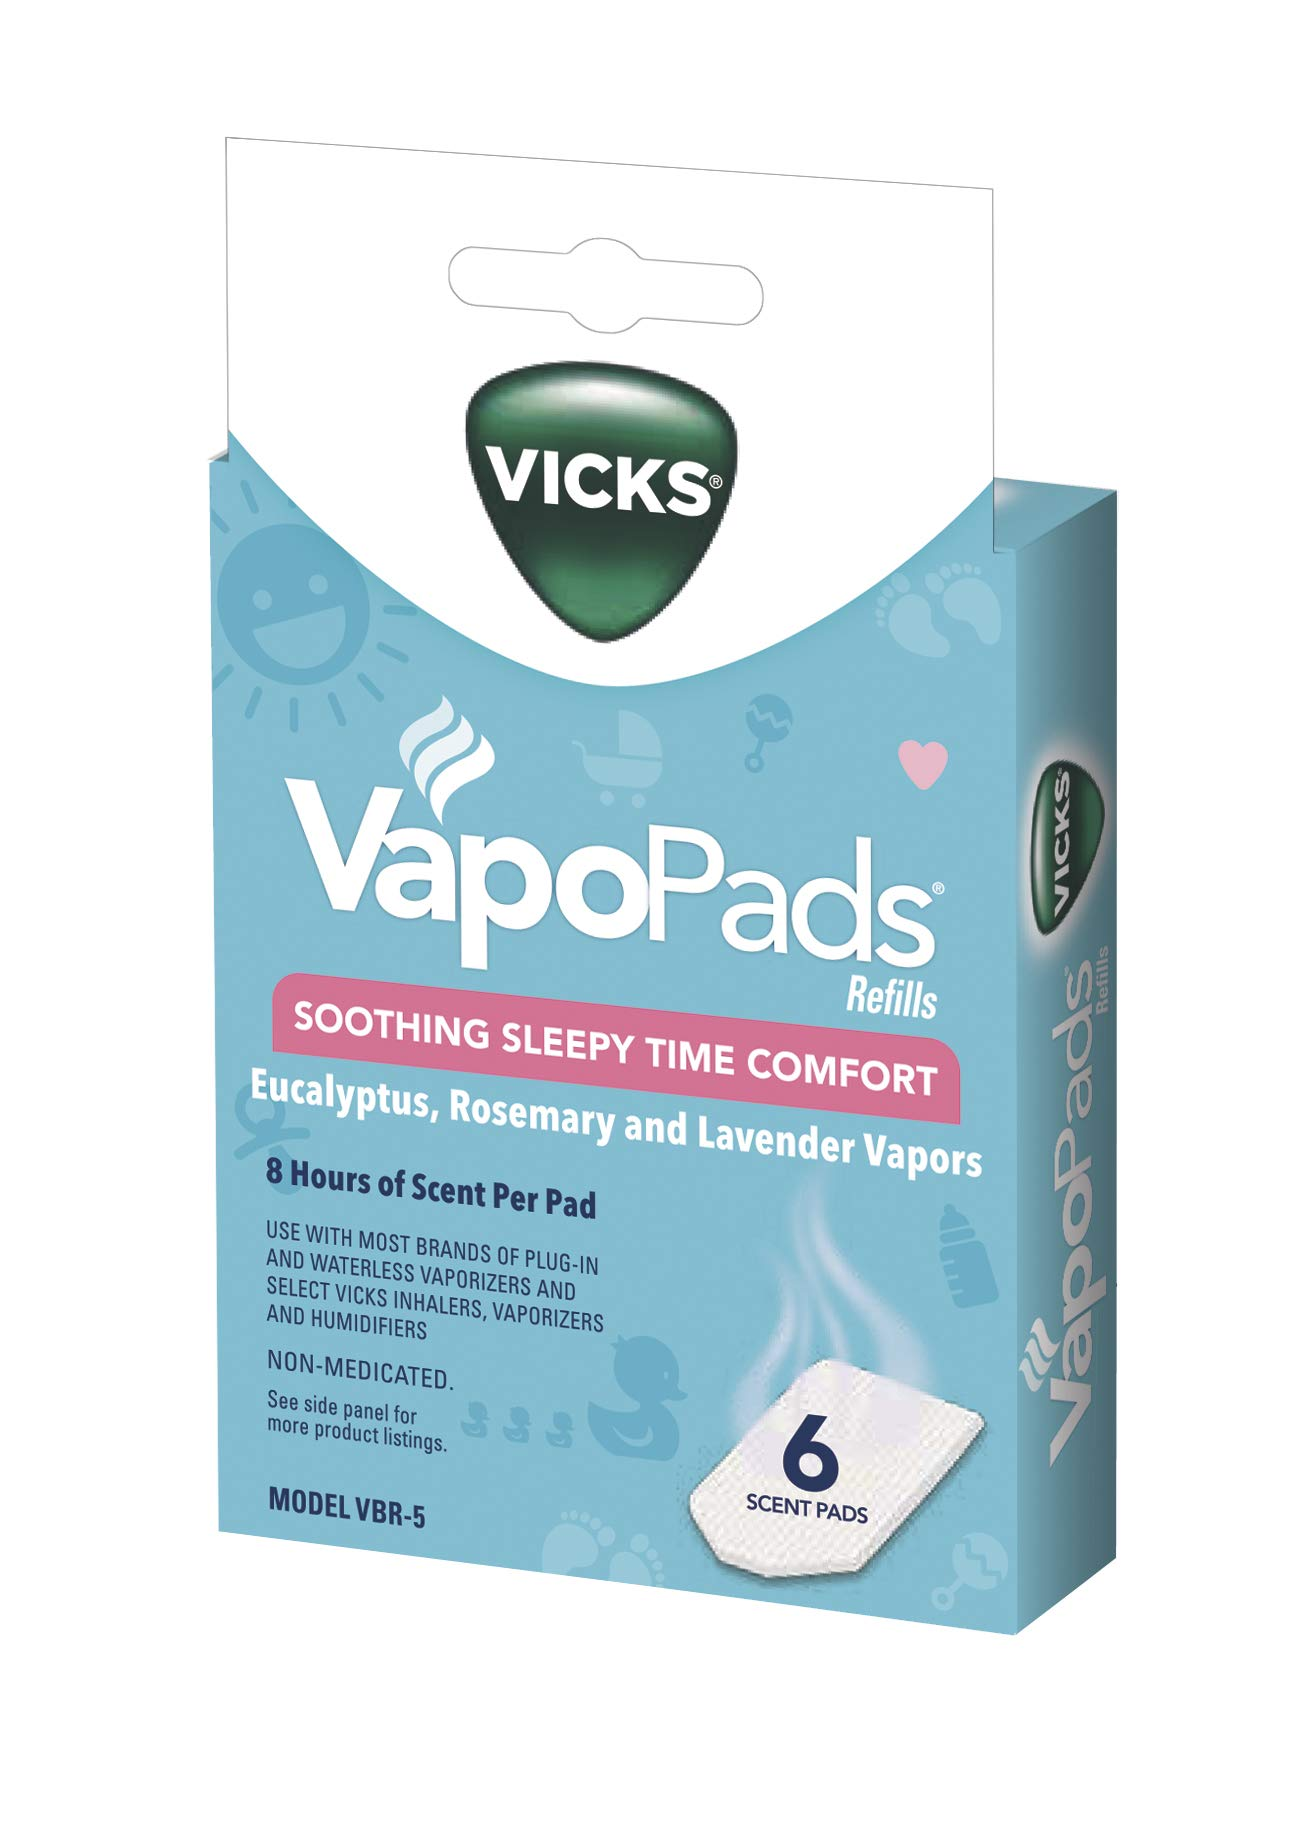 Vicks Sleepytime Waterless Vaporizer Scent Pads Rosemary, Lavender and Eucalyptus Scented Vapor Pad Refills